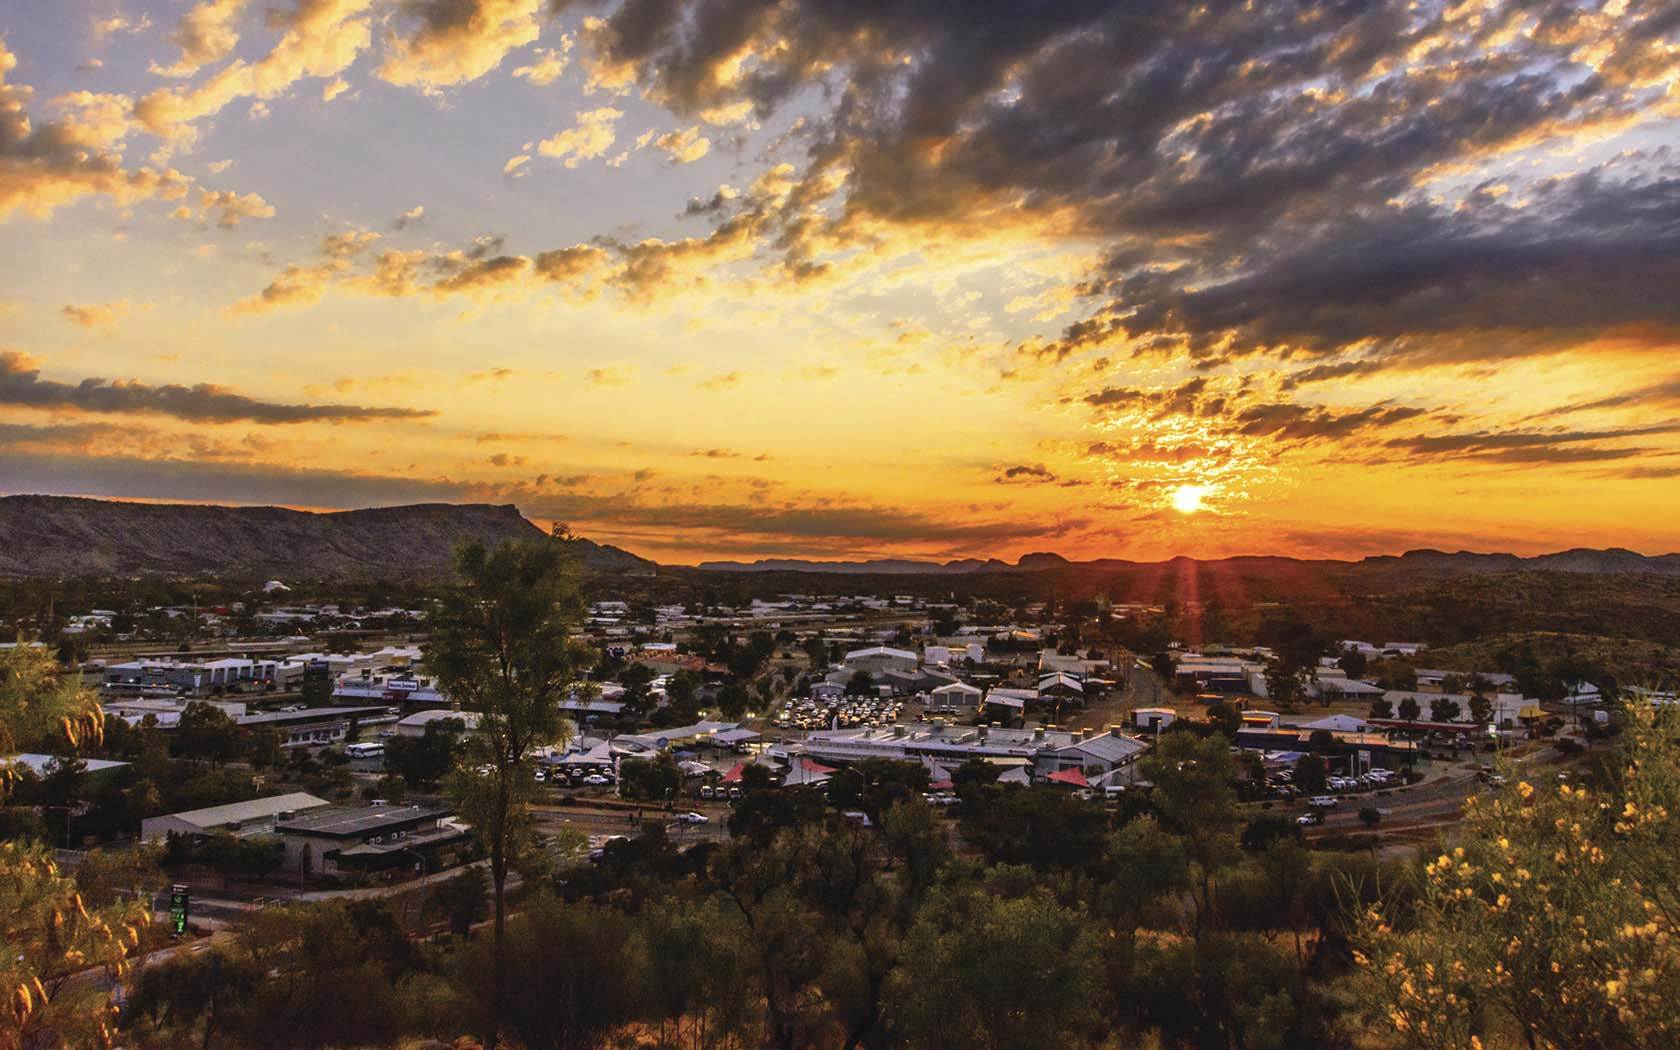 A Day Spent in Alice Springs - AWOL/Junkee - Globetrotting horse riding holidays